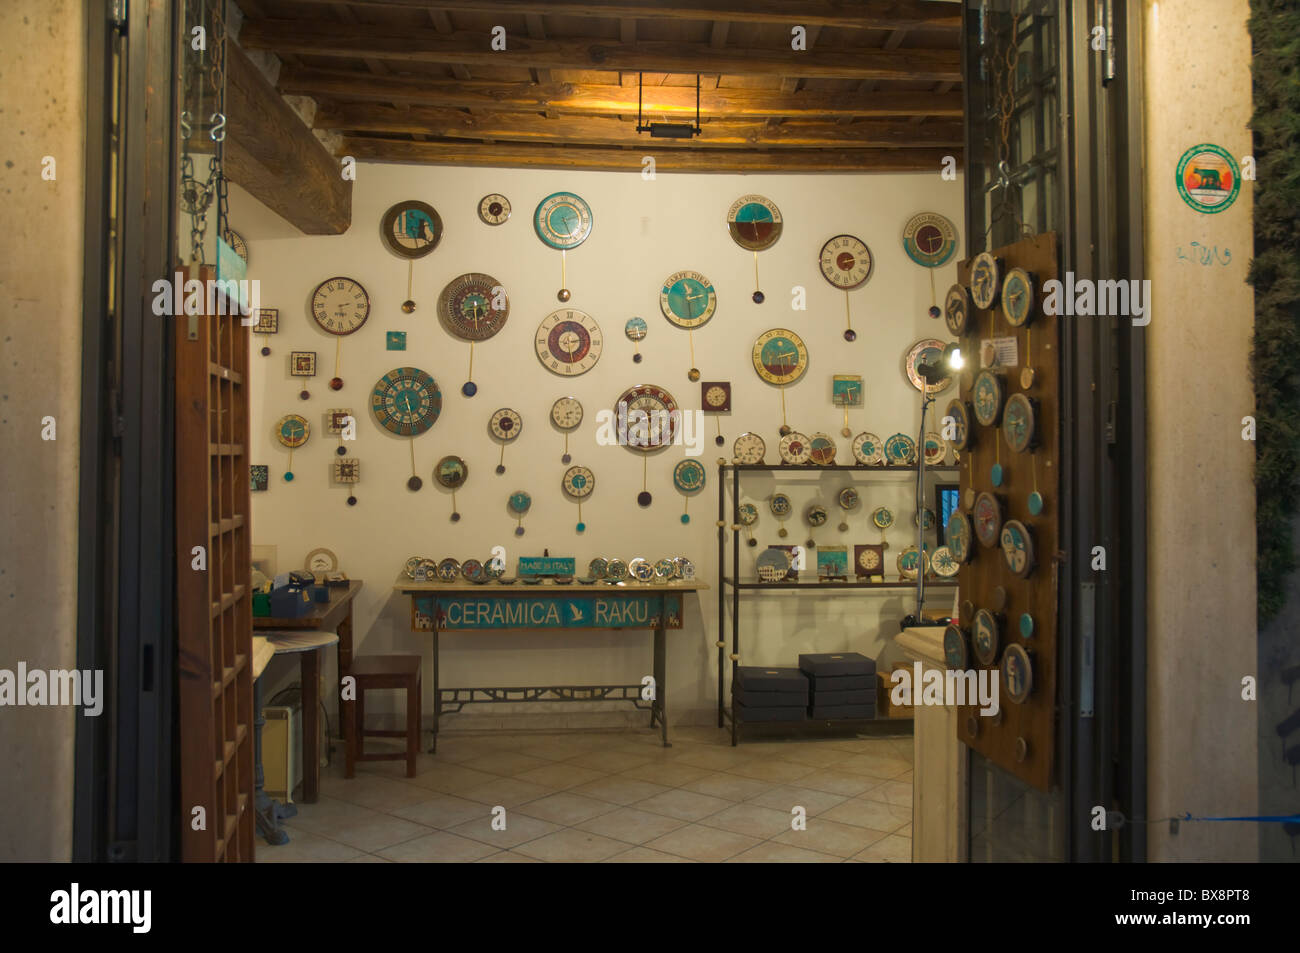 Shop selling clocks centro storico the old town Rome Italy Europe - Stock Image